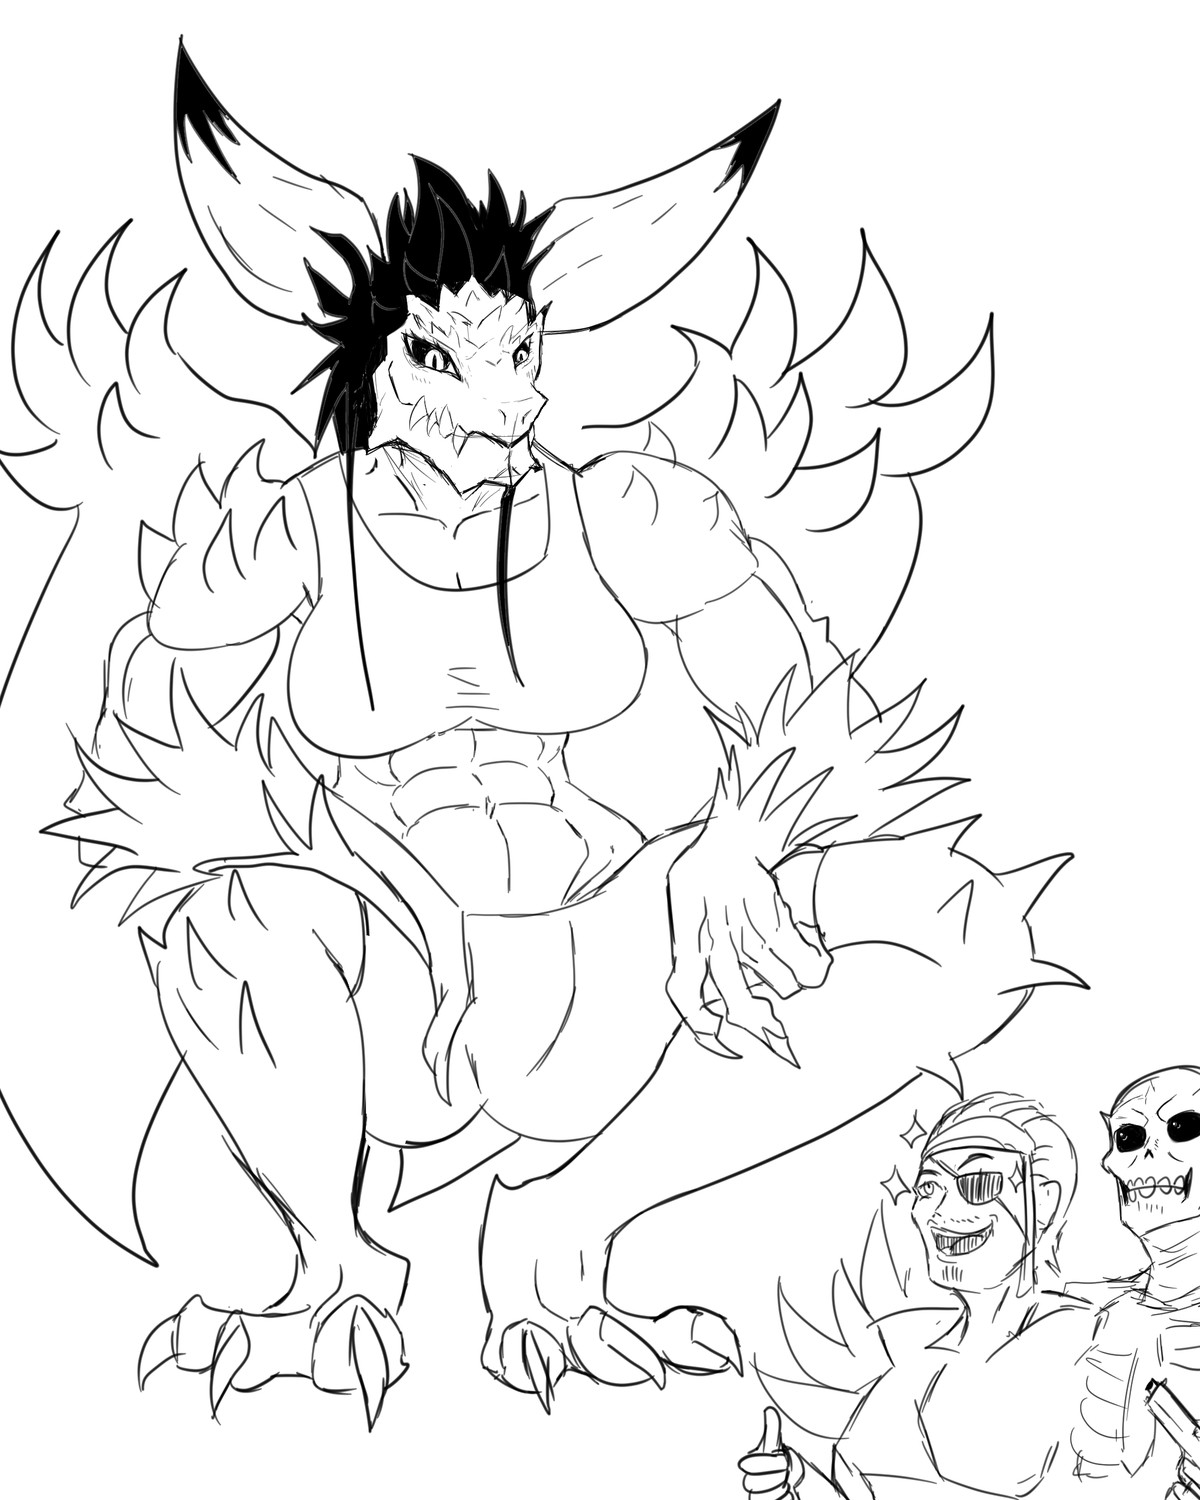 Nergigante (scalie ver.). join list: GBArt (261 subs)Mention History (alt version cuz reee furries).. The dragon wants to seduce him.